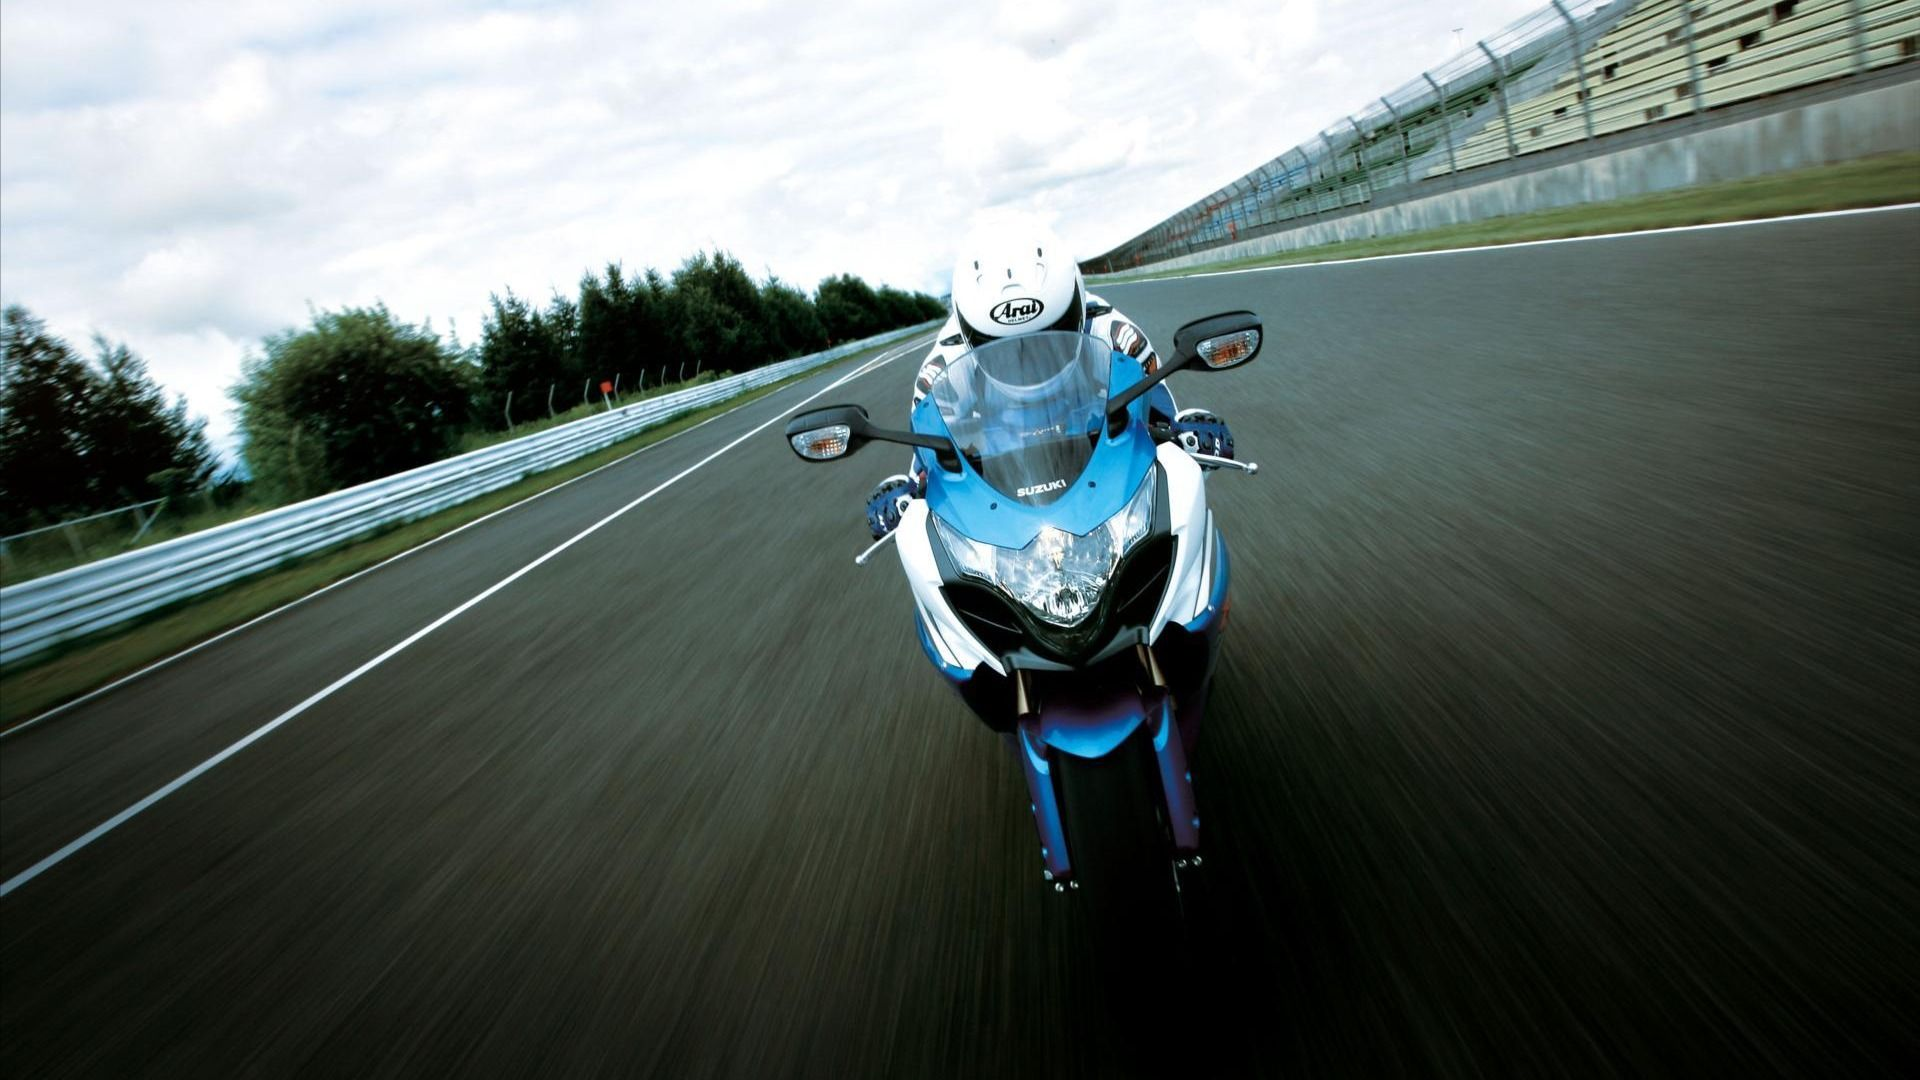 Bike Racing Hd Wallpapers Bike Racing Hd Wallpapers Pinterest